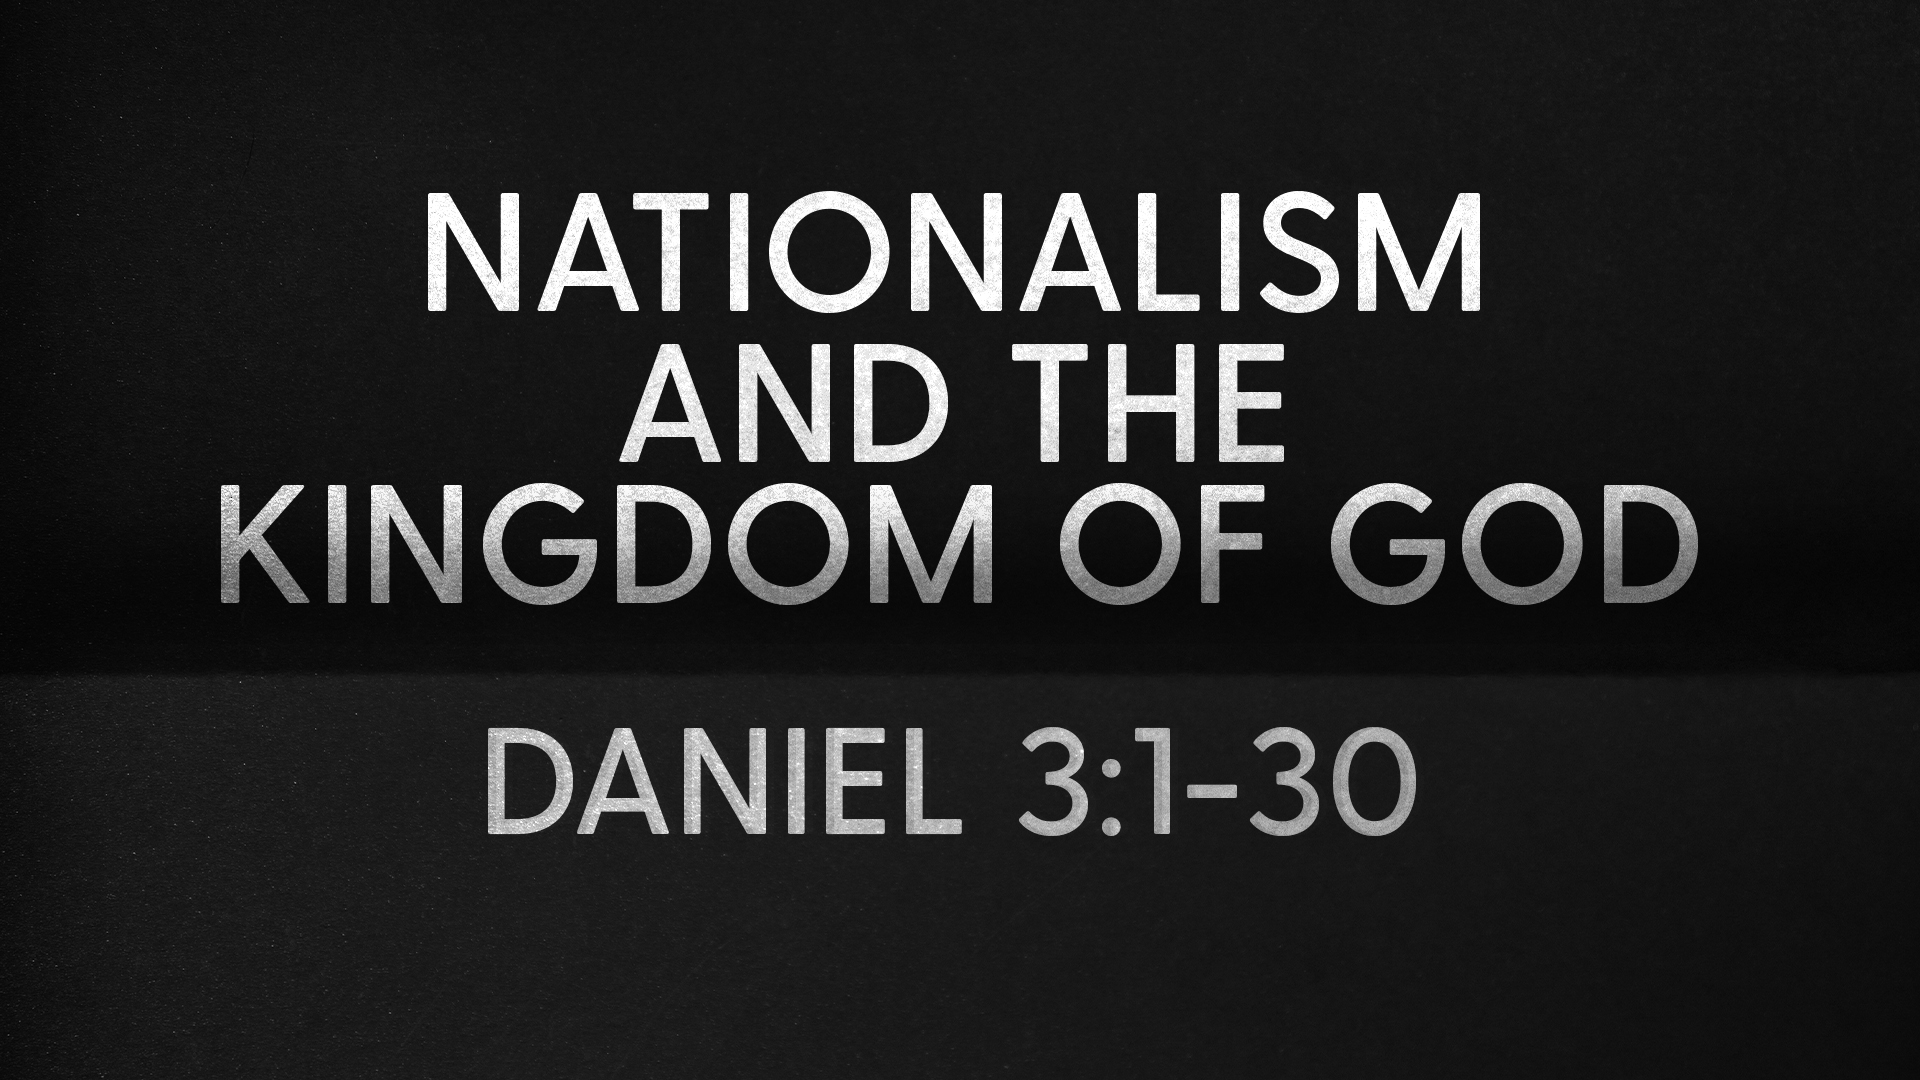 Nationalism and the Kingdom of God